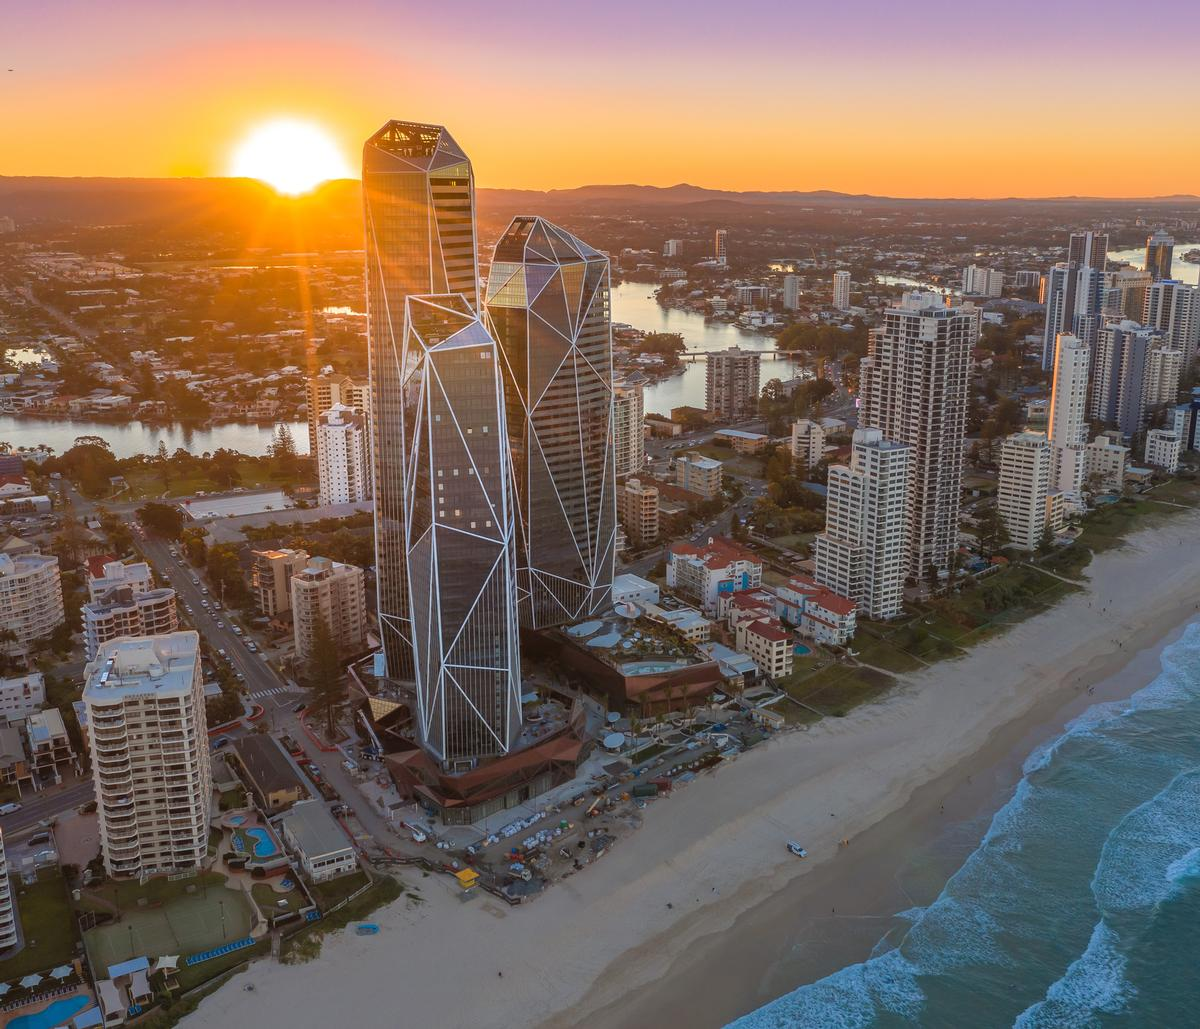 Langham to open beachfront hotel and TCM spa inside Chad Oppenheim's glimmering crystalline towers